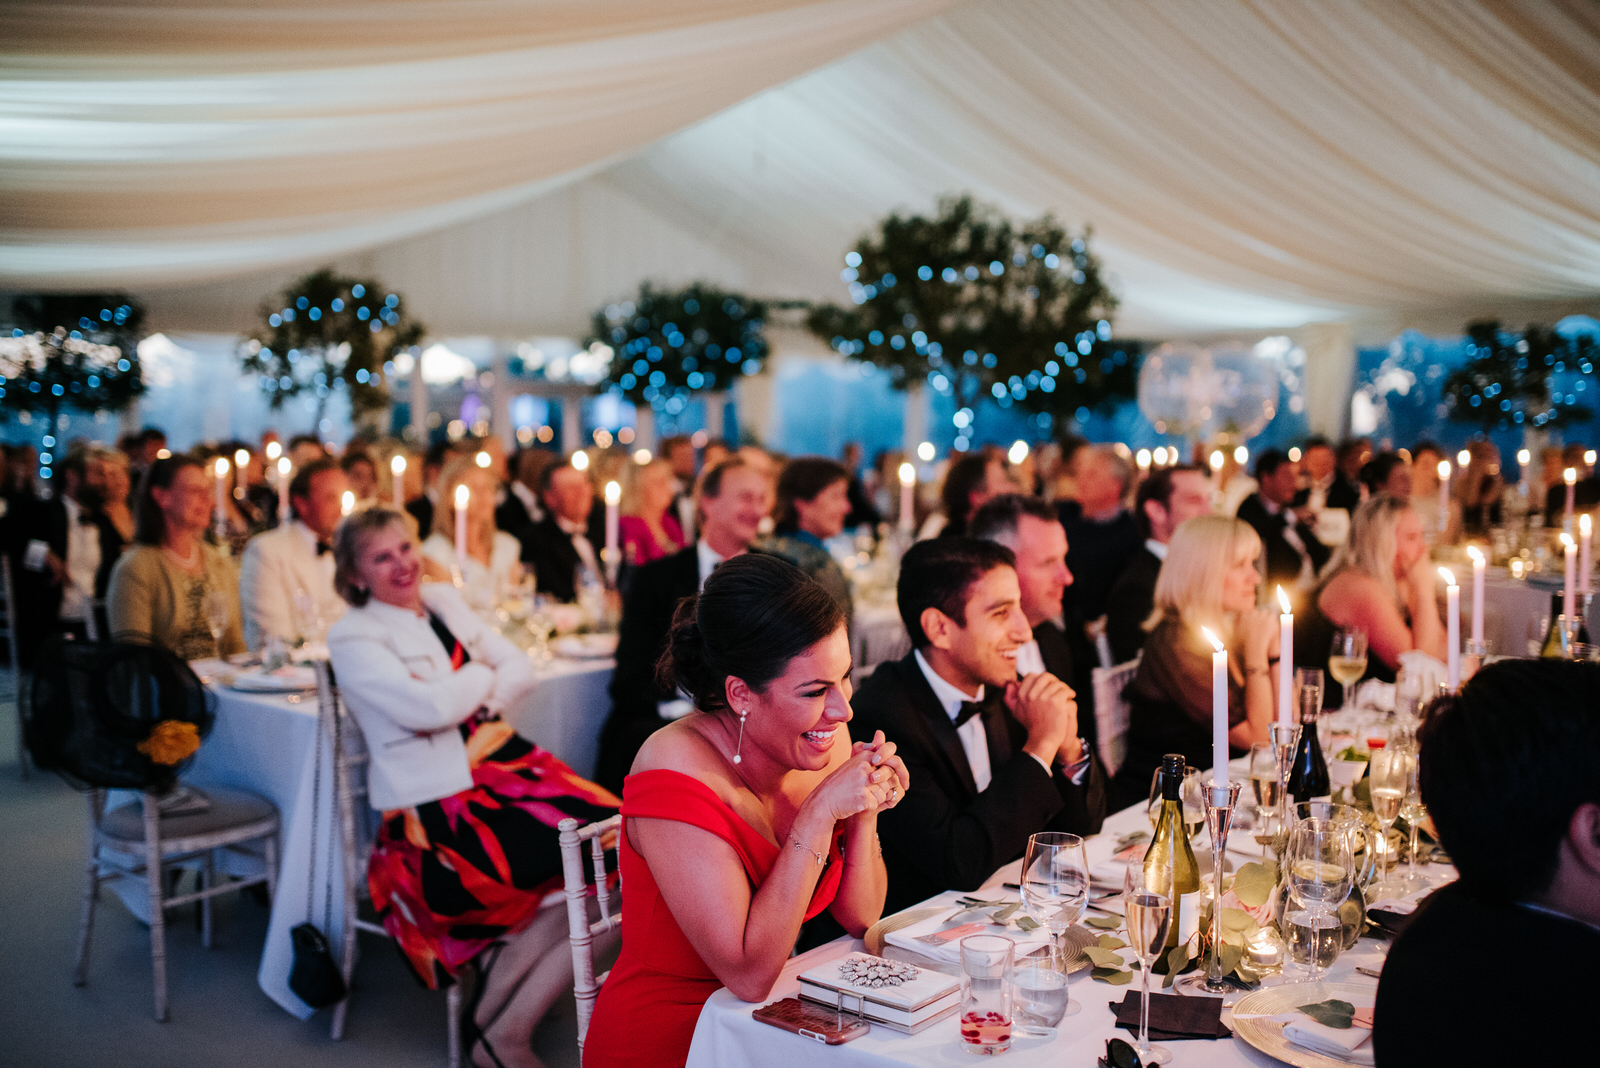 Guests are amused as speeches are delivered in candle-lit marque